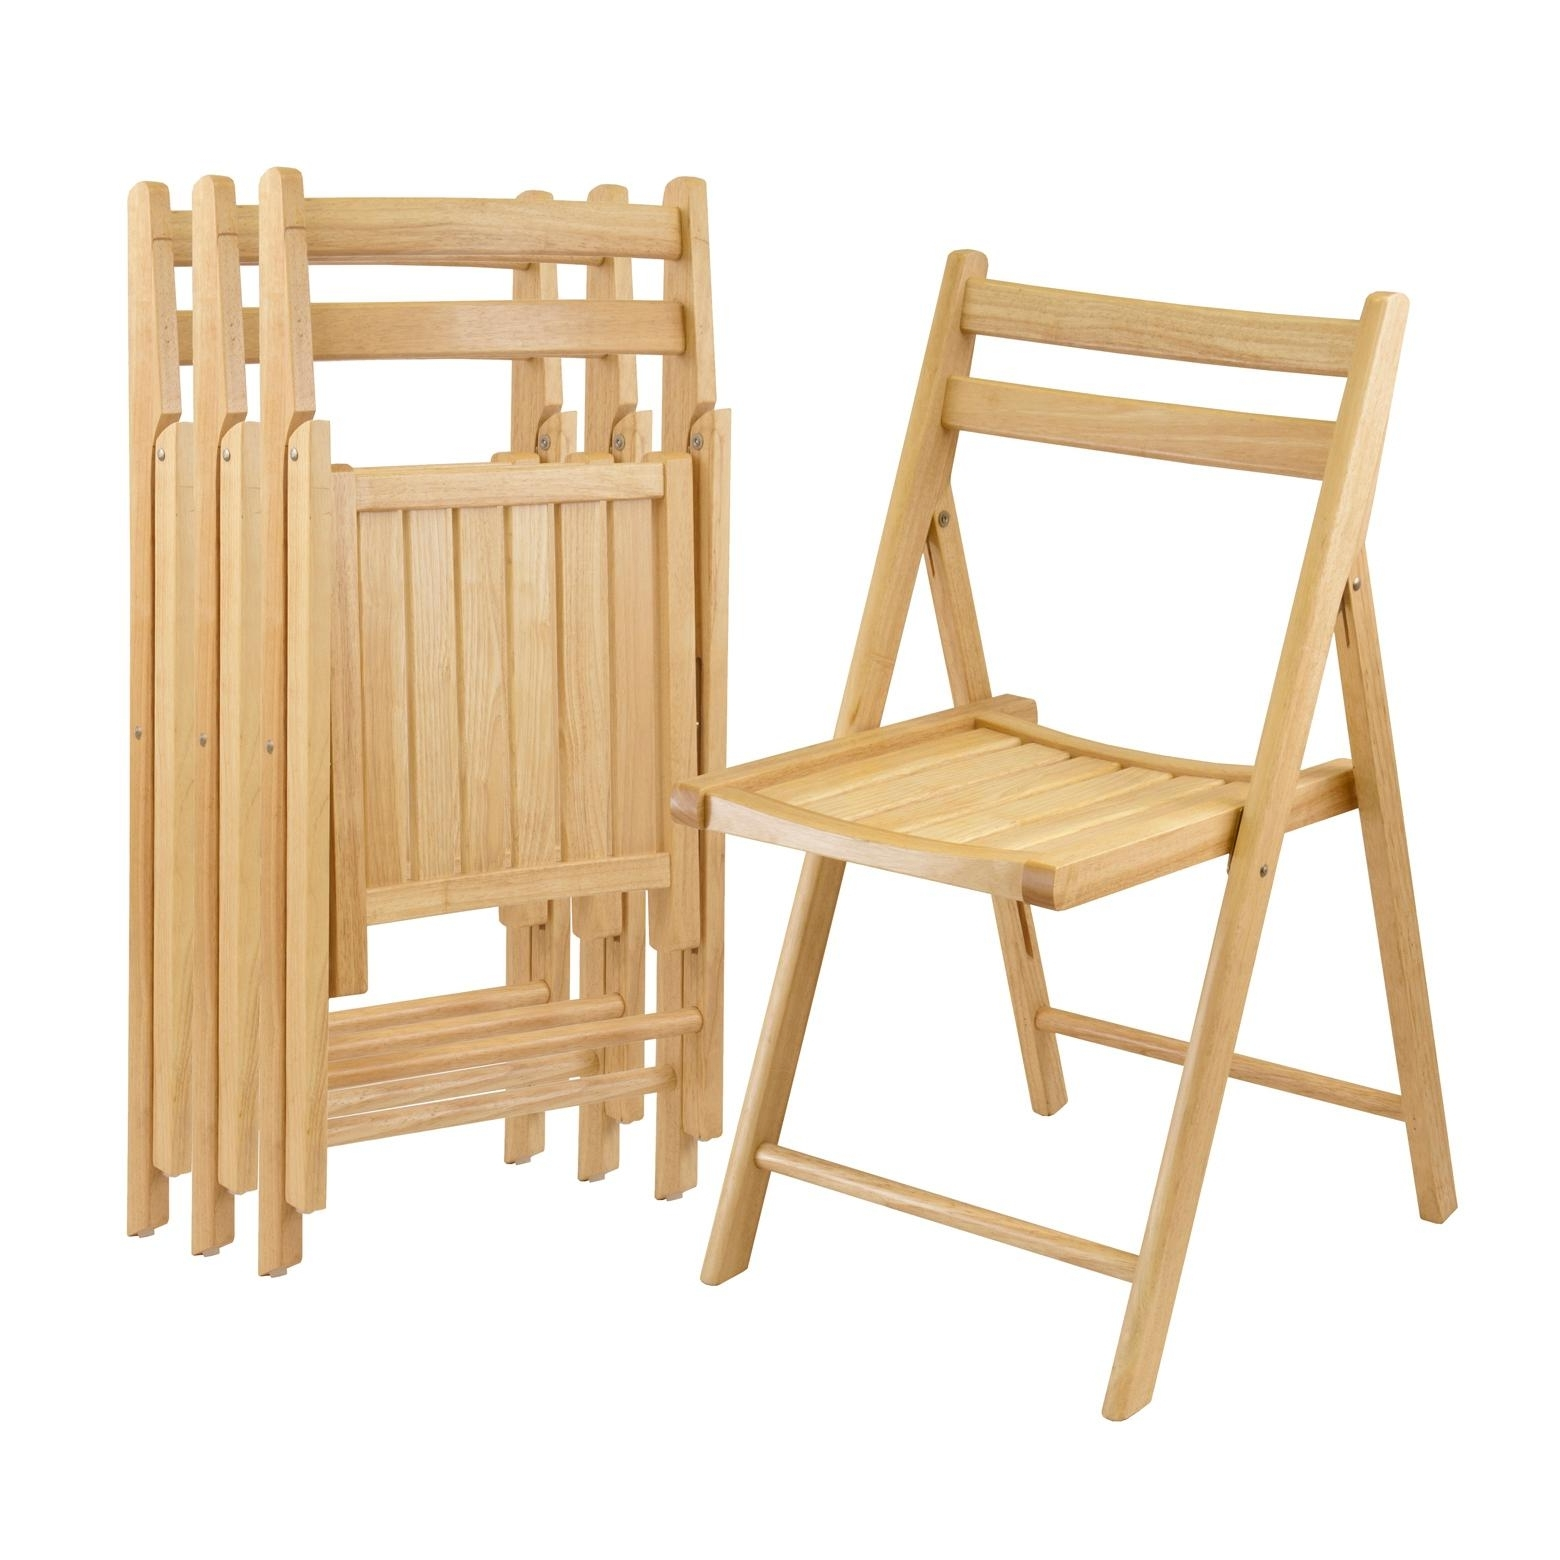 Best And Newest Amazon: Winsome Wood Folding Chairs, Natural Finish, Set Of 4 Inside Dining Tables With Fold Away Chairs (View 11 of 25)